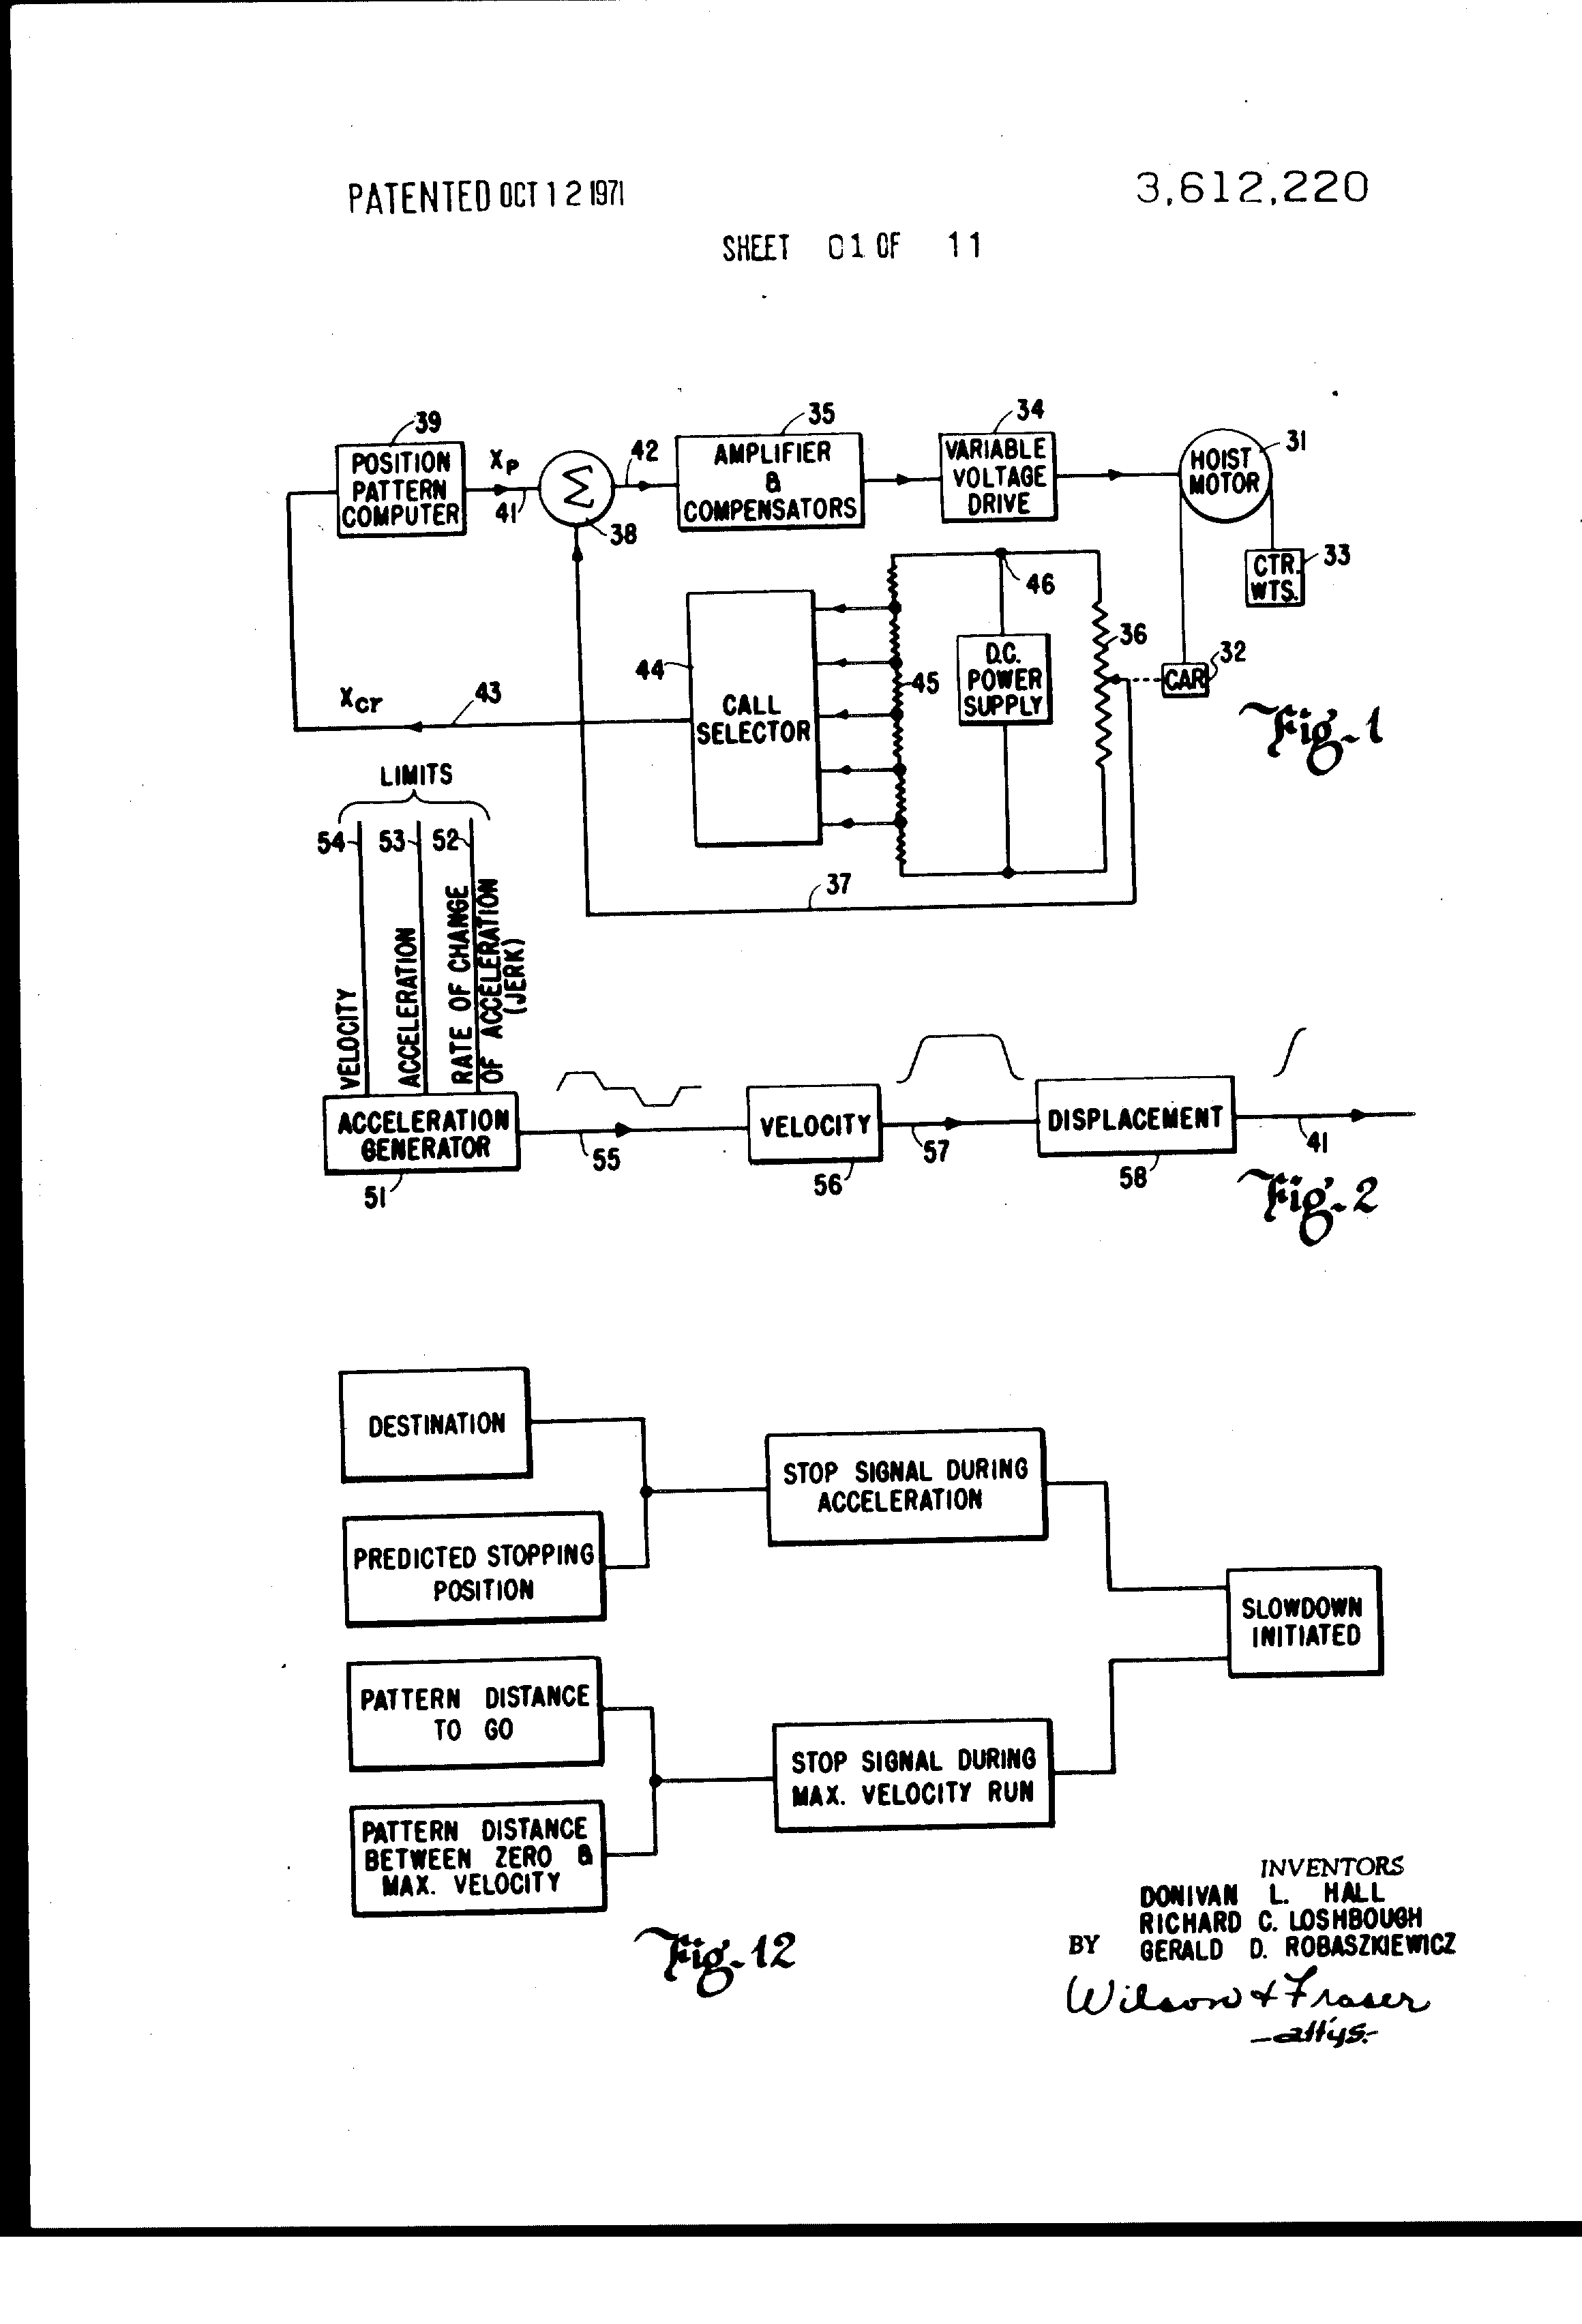 Marantec Comfort 220 Wiring Diagram 35 Images Garage Door Opener Us3612220 1 Patent Elevator Control Google Patents At Highcare